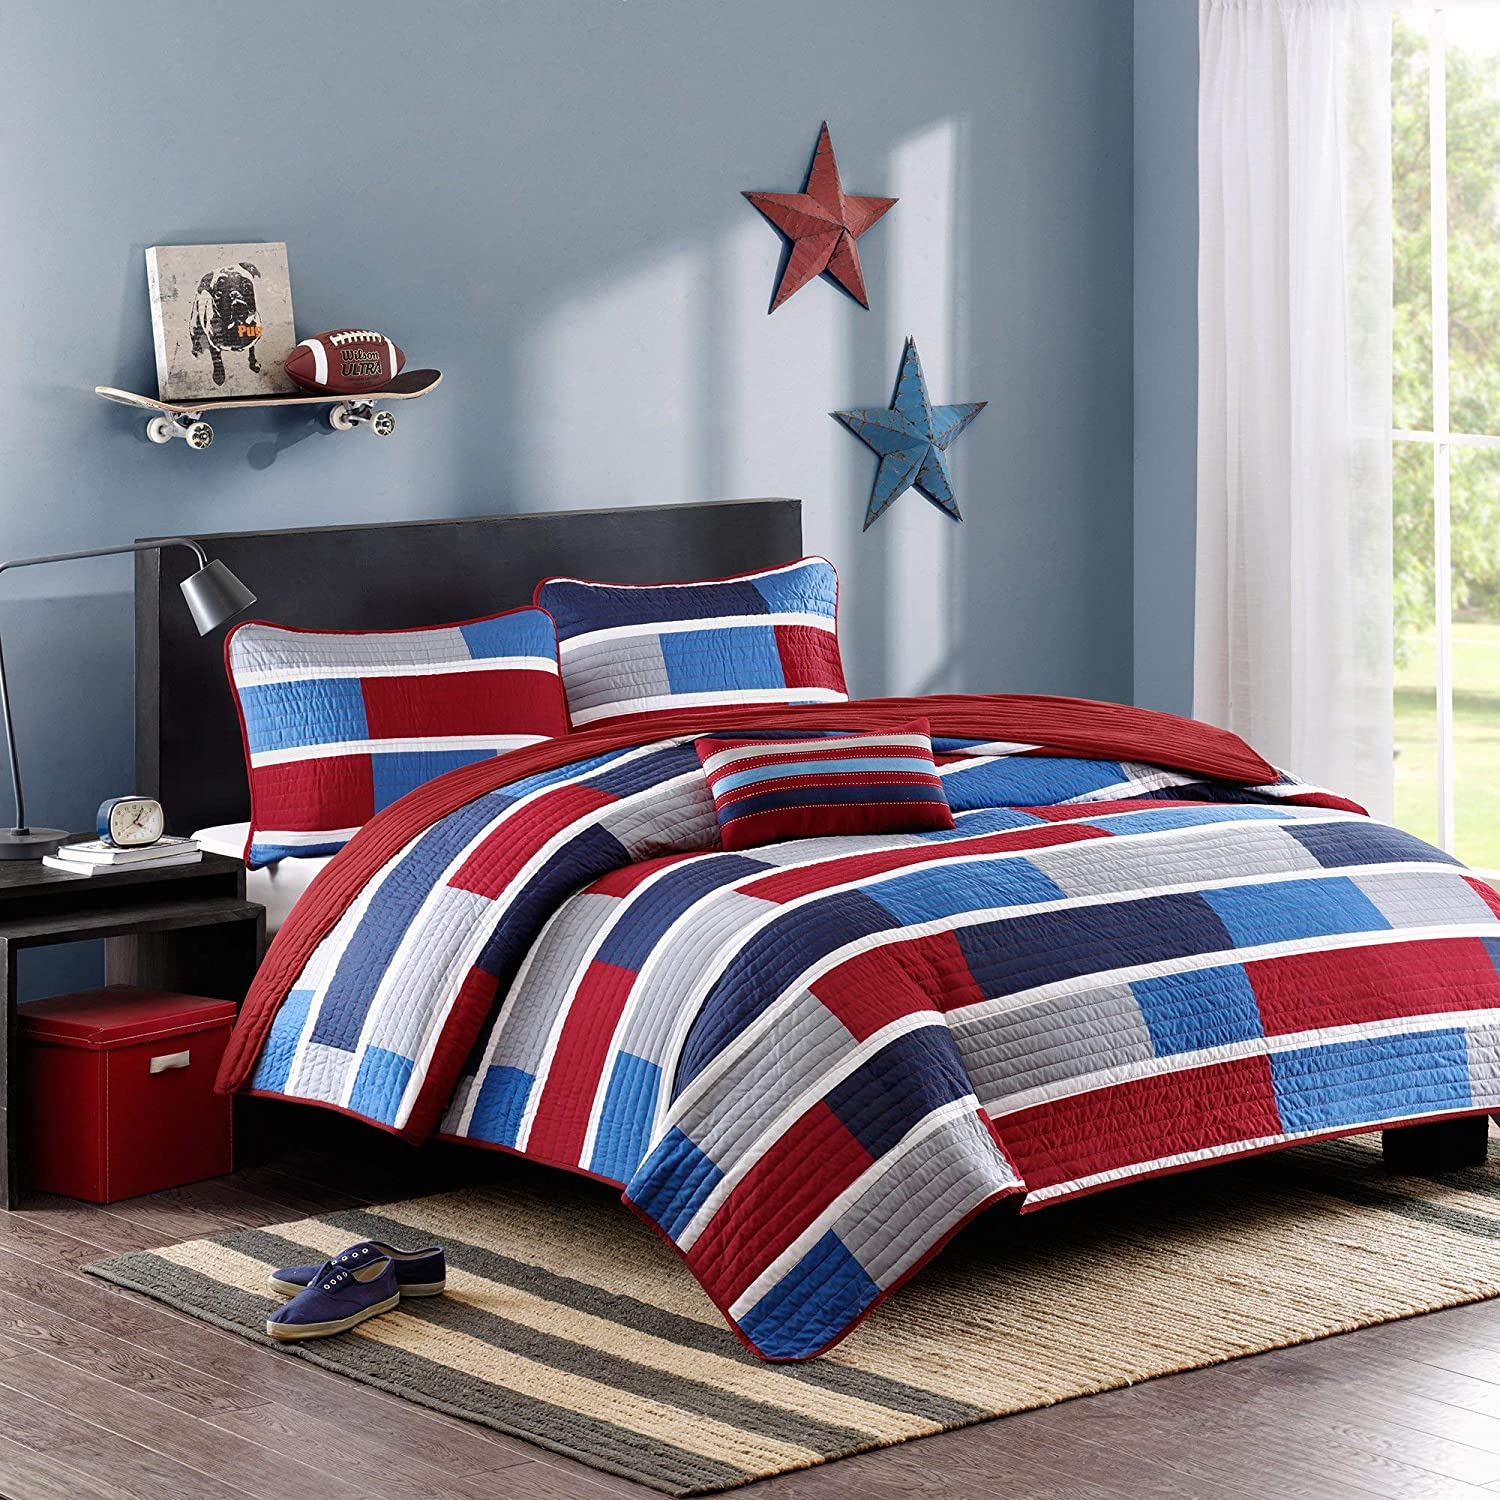 Mizone Quilt, Full/Queen, Navy/Red